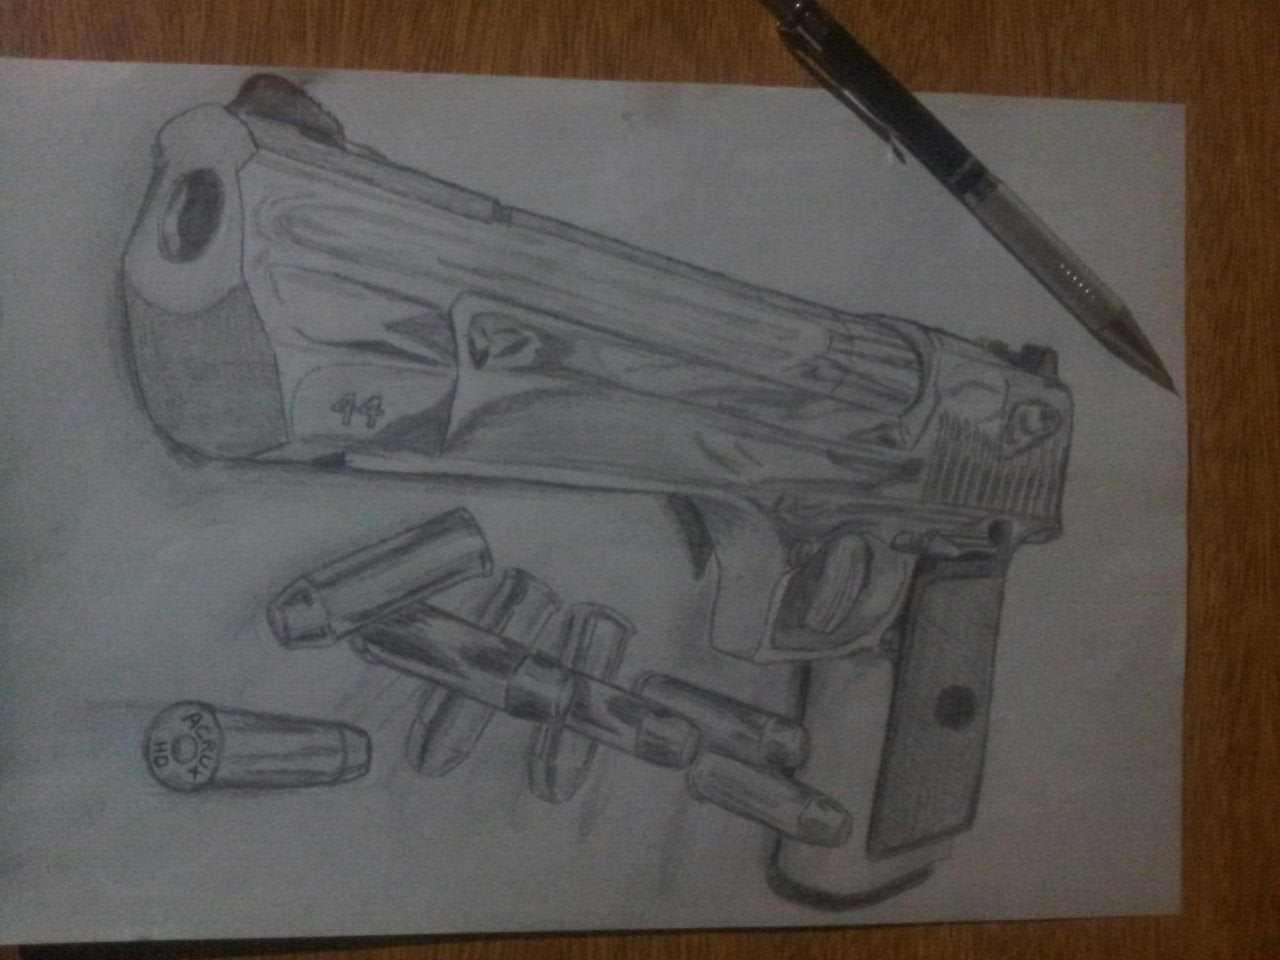 1280x960 Dibujando Drawing Magnum 44 Desert Eagle